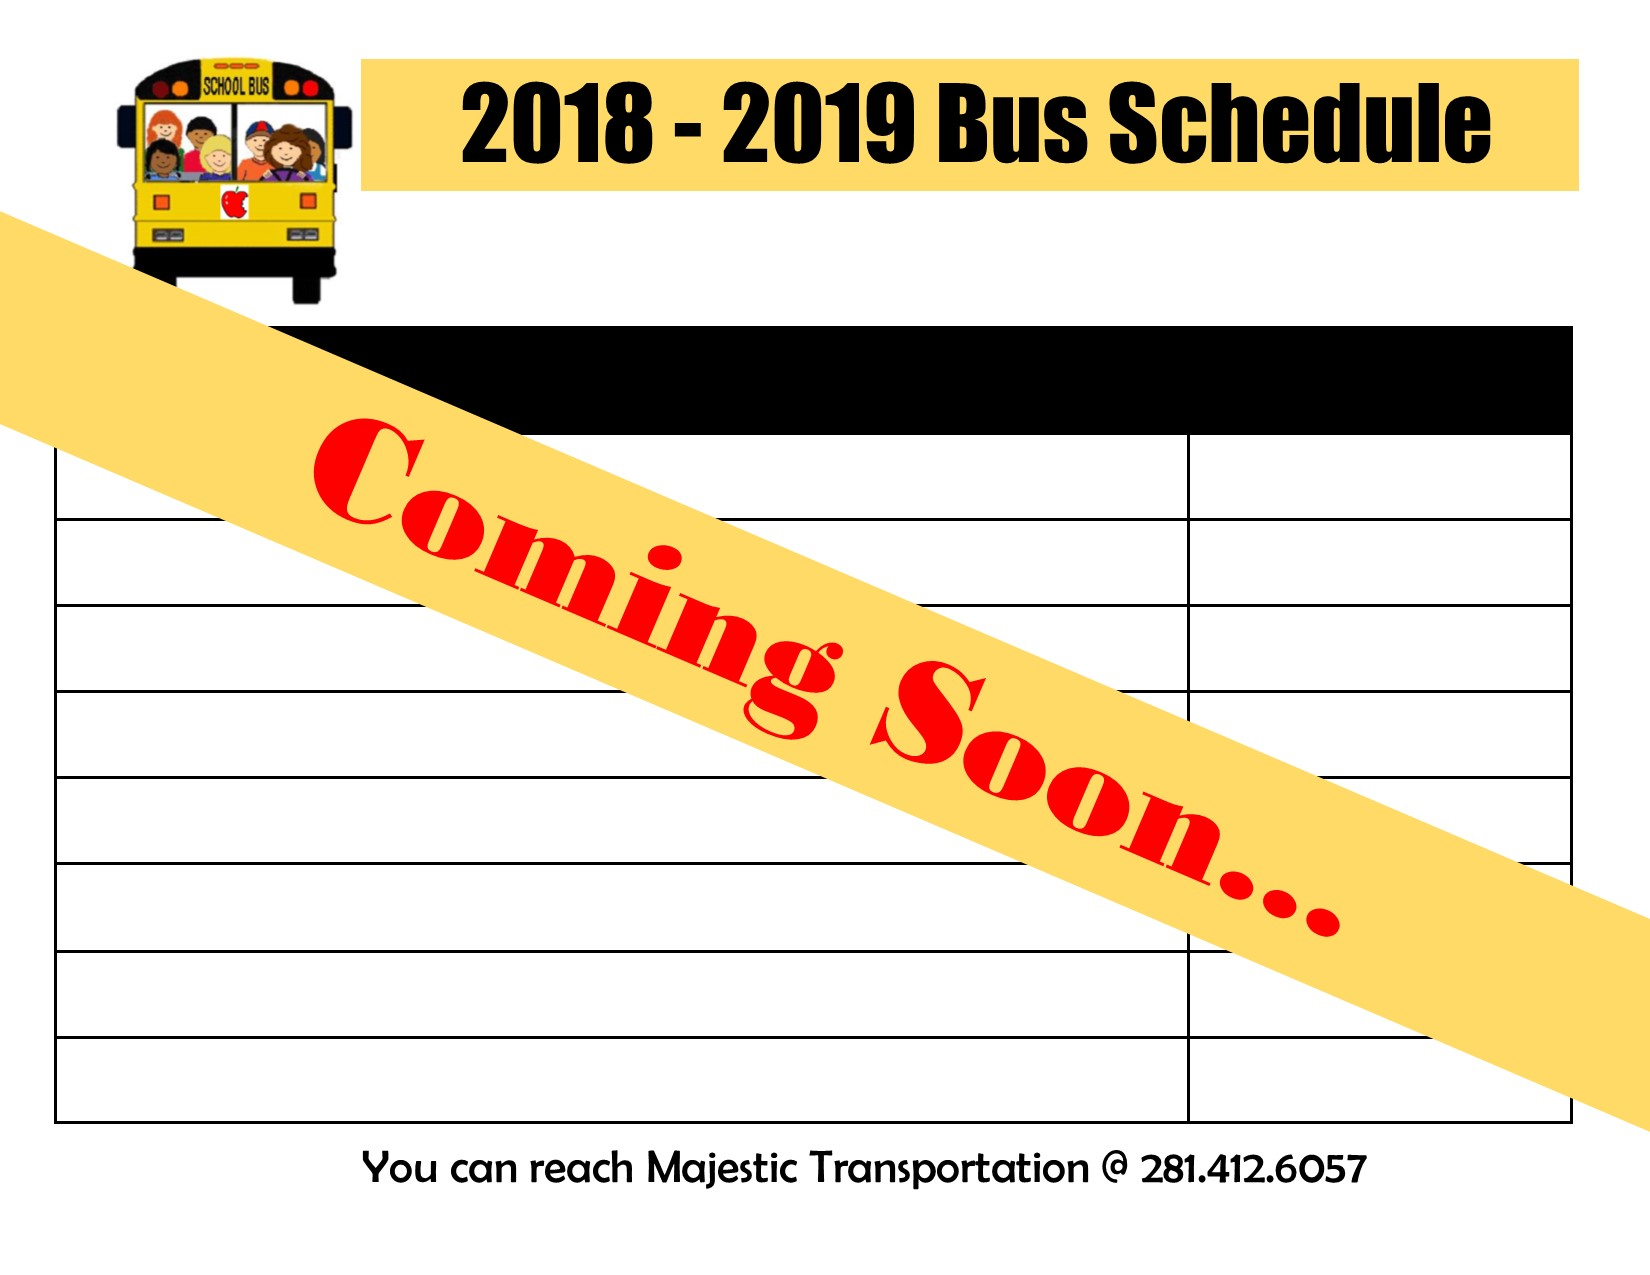 2018-2019 New Bus Schedule. Coming soon